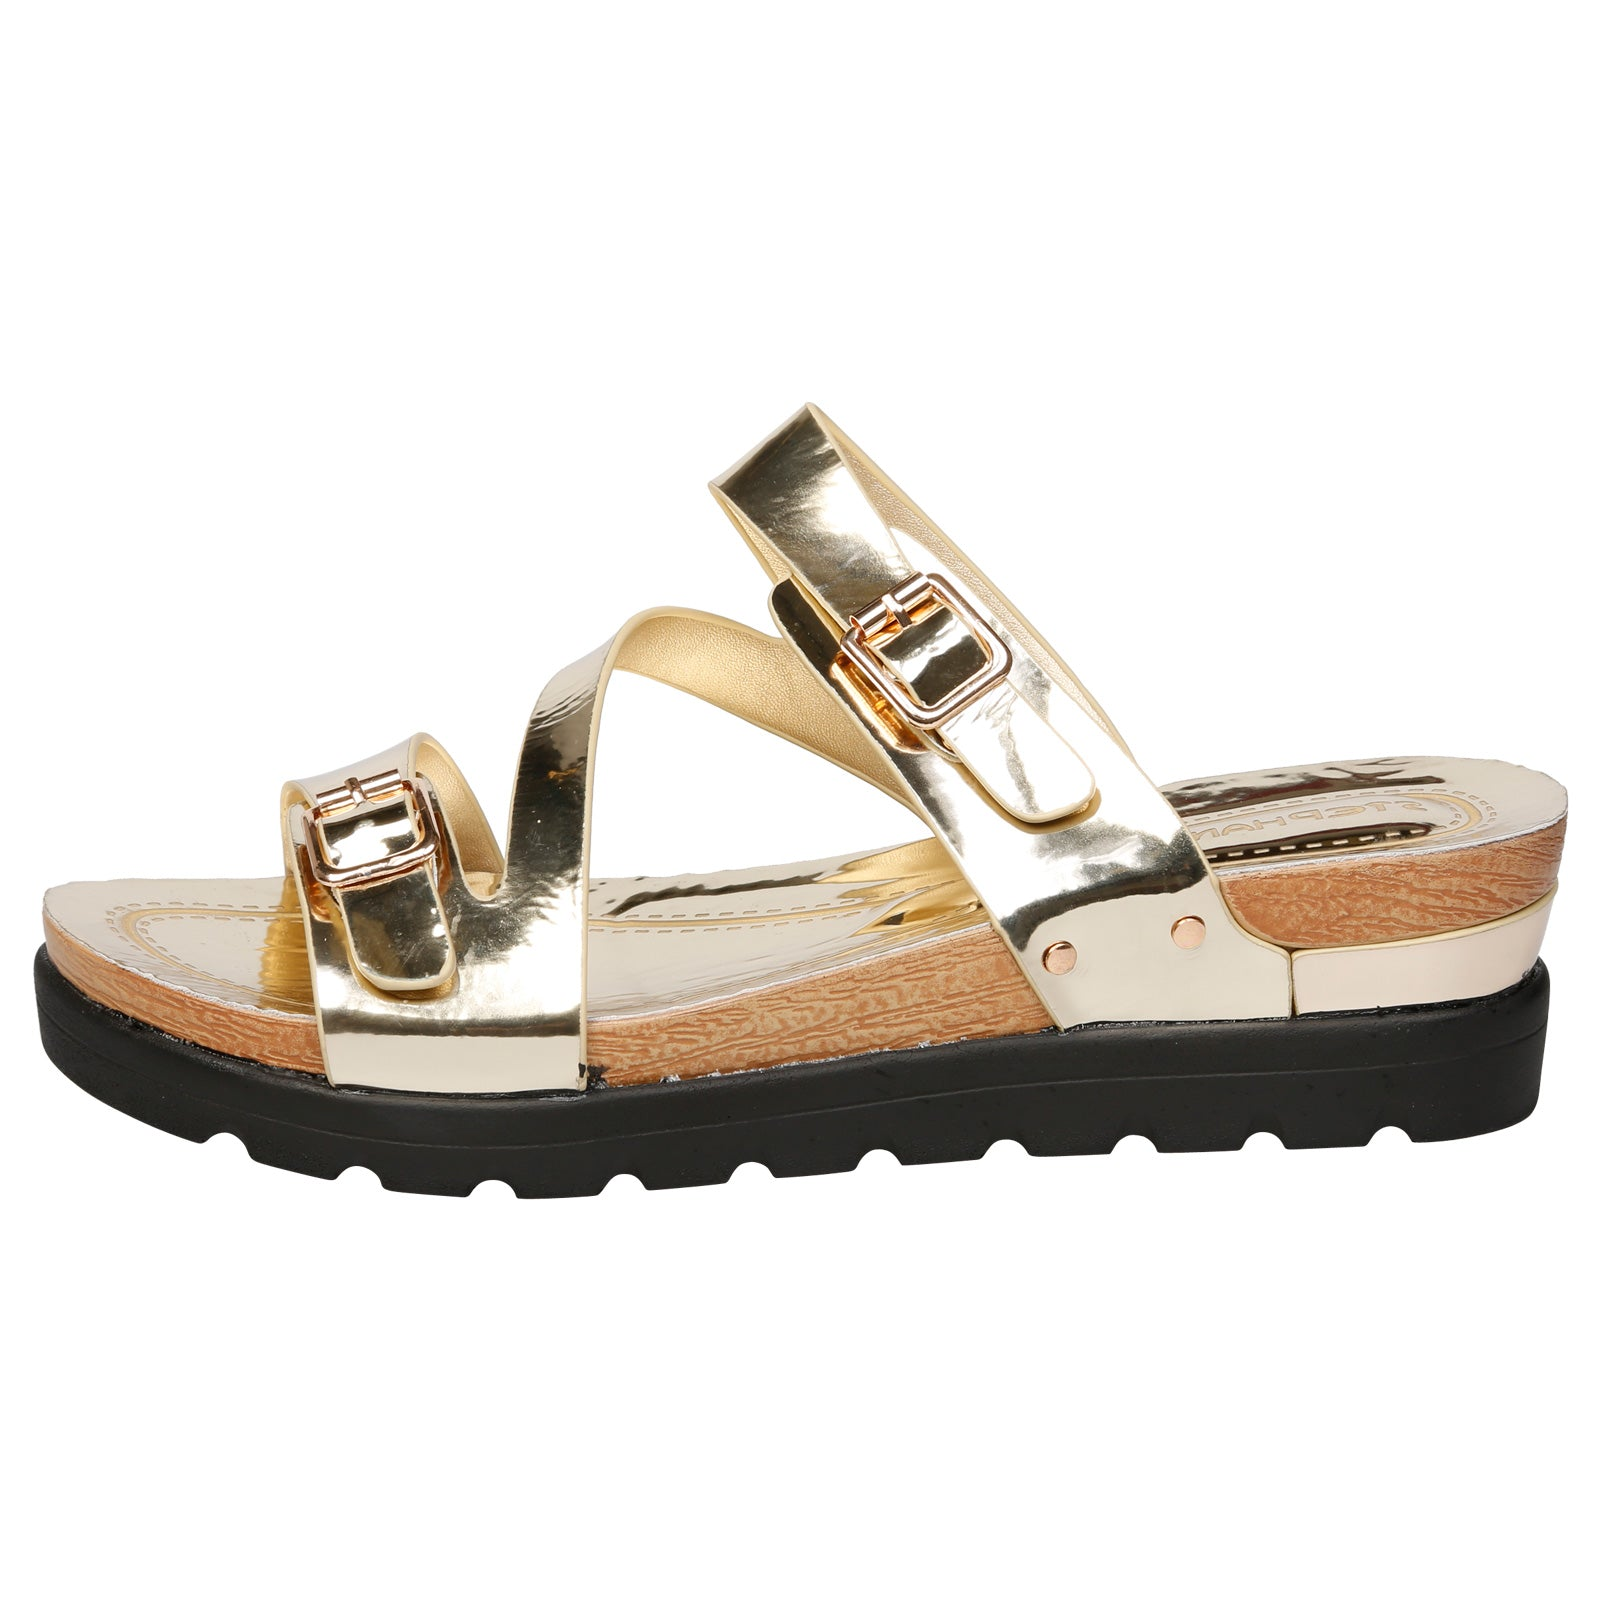 Enid Large Size Buckled Flatform Sandals in Gold Patent - Feet First Fashion